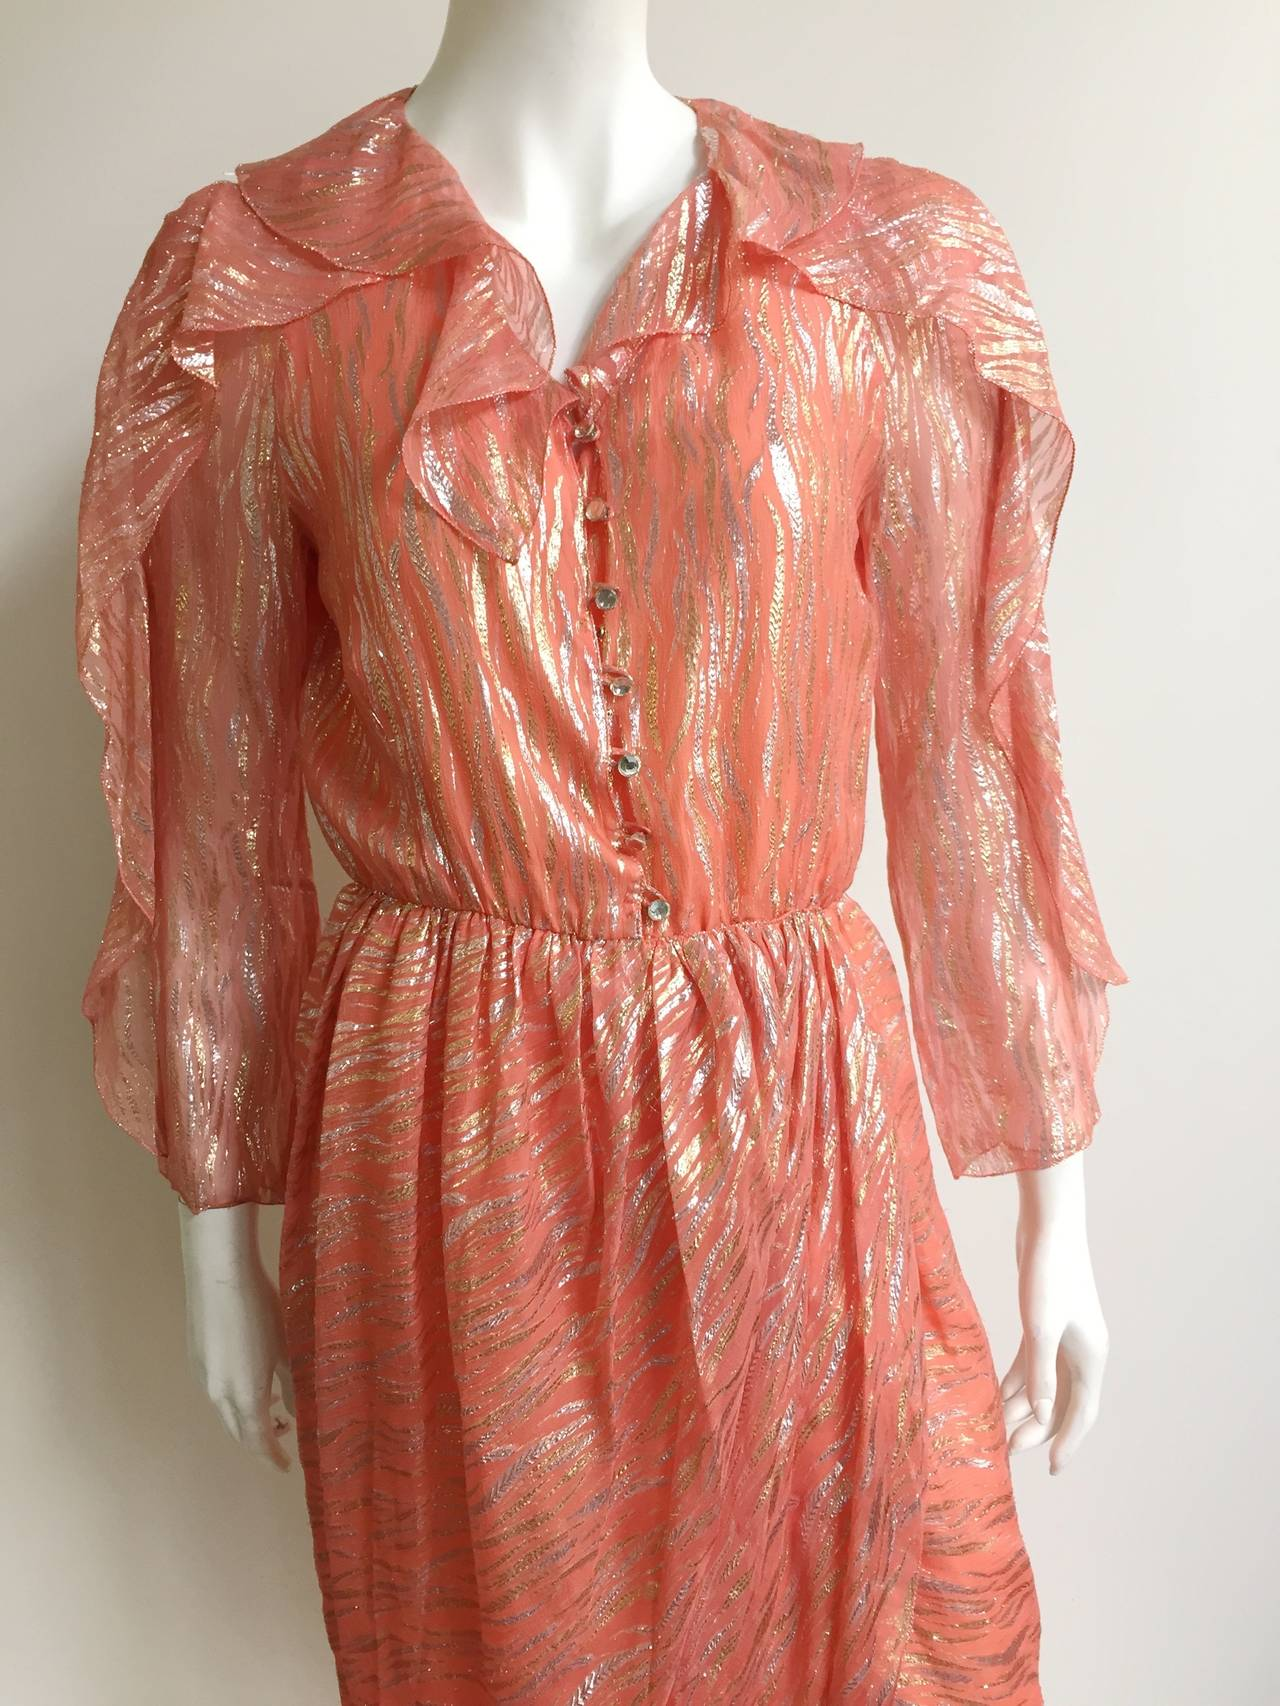 Stephen Burrows 1980s coral lame zebra print wrap dress is a vintage size 10 but fits like a modern size 6 ( please see & use measurements).  Snap button and hook on size of waist. Flowing sleeves and collar make this a very dramatic dress.